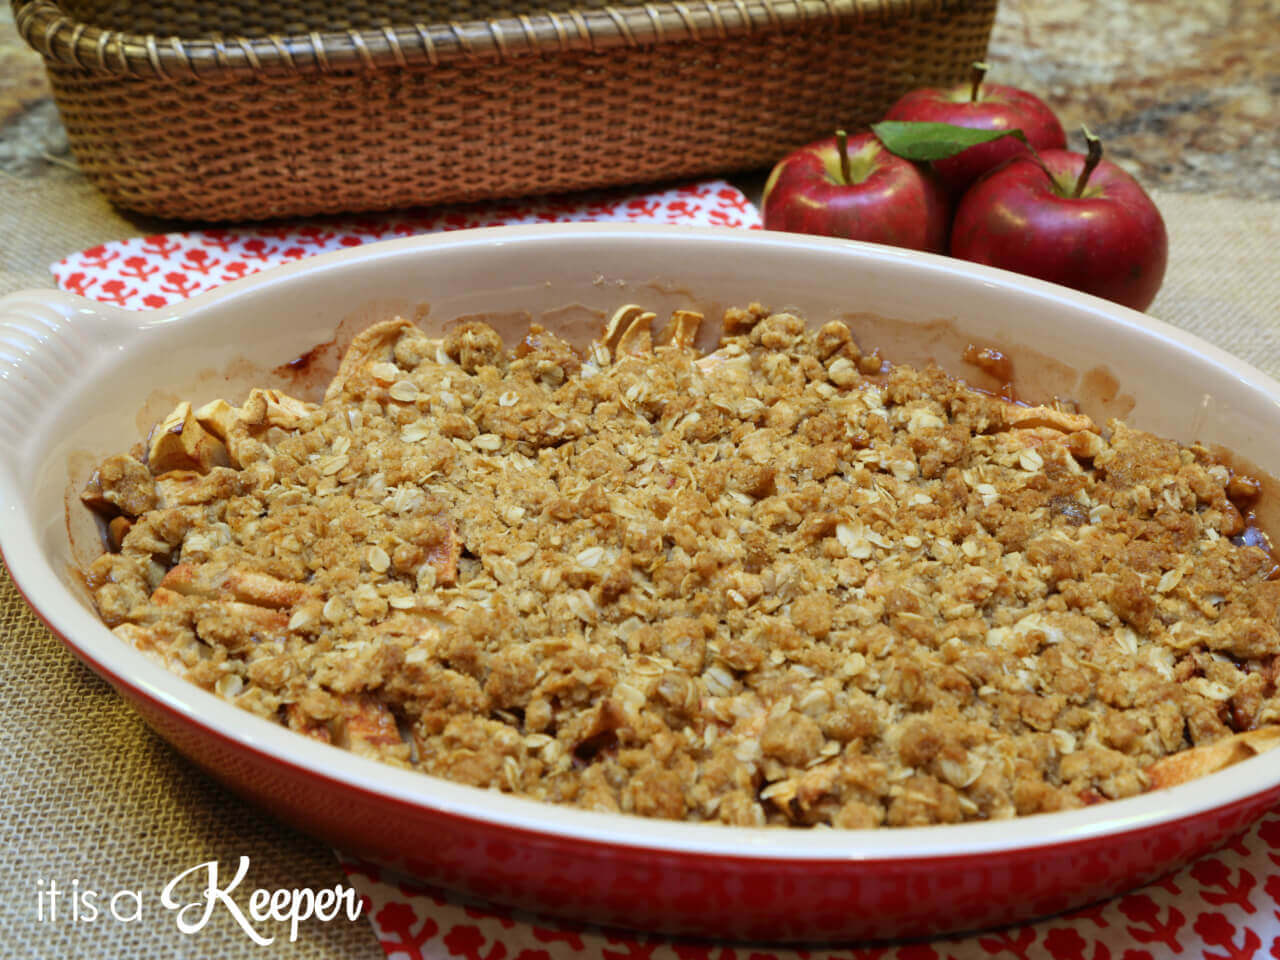 Apple Crisp - This is the BEST apple crisp recipe I have ever tried